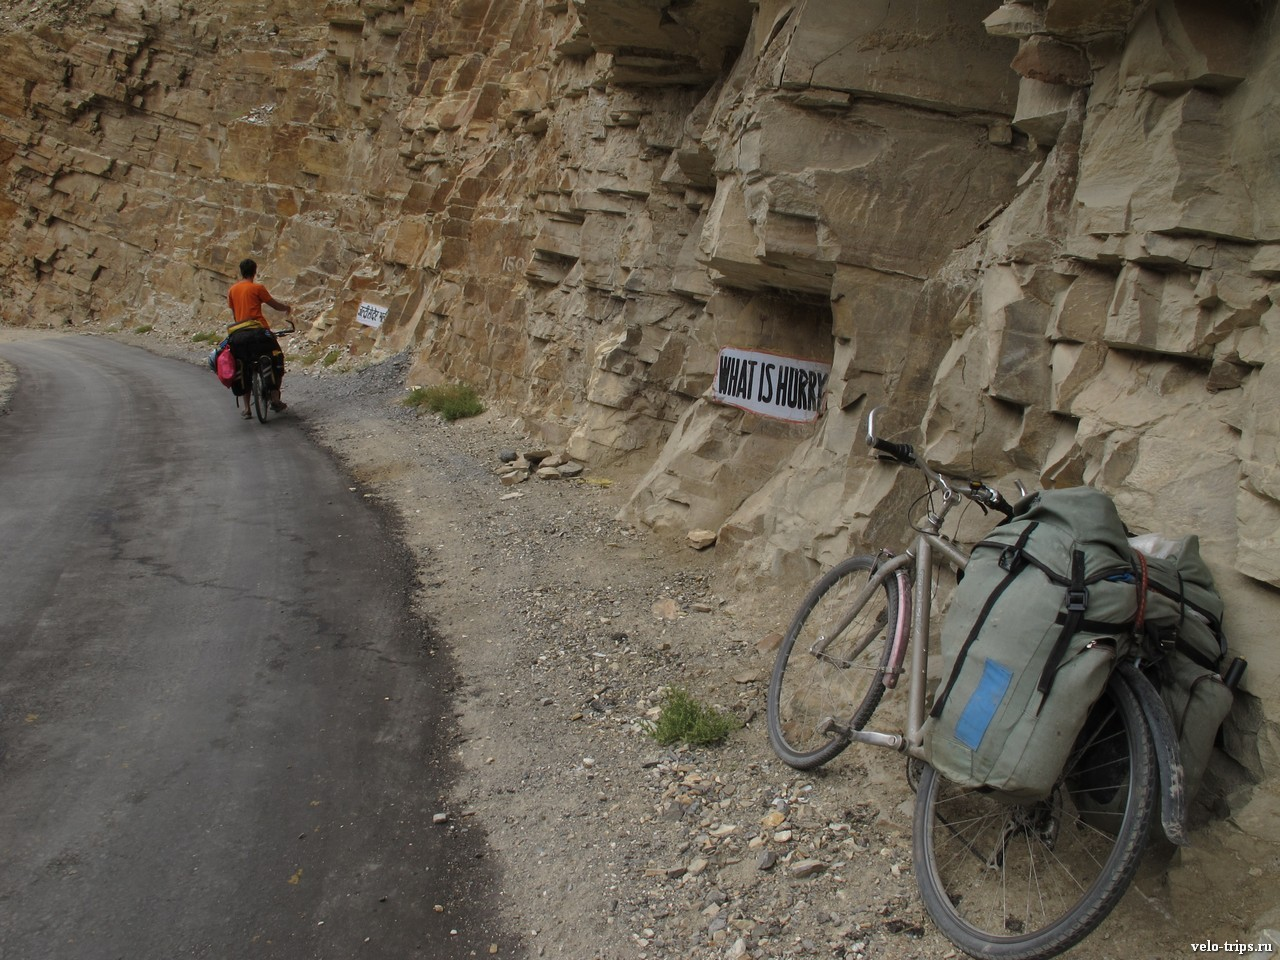 Road signs on the turn of the road in Himalaya